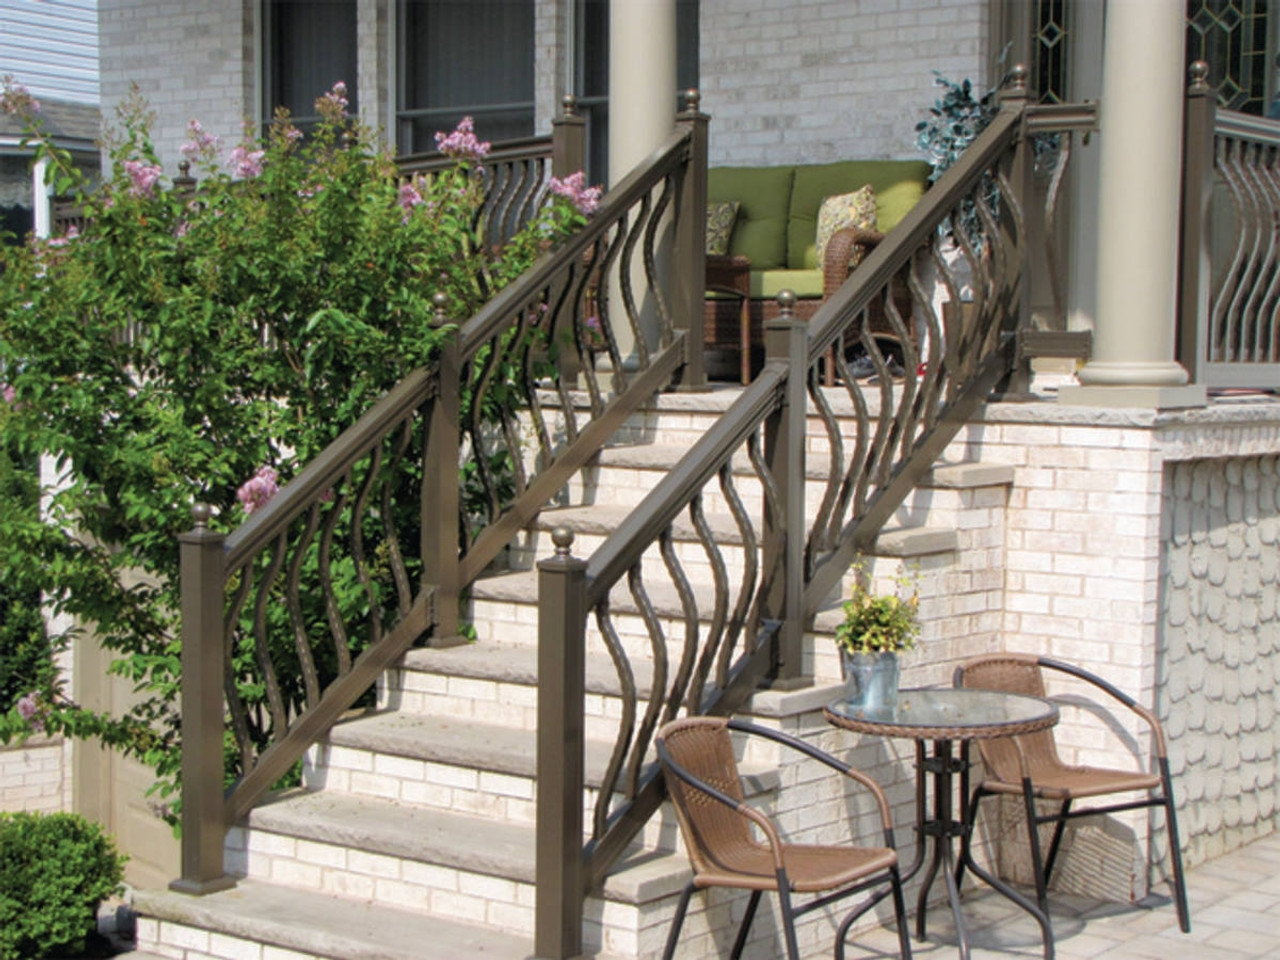 Key Link Lancaster Heavy Duty Aluminum Stair Railing Sections | Stair Railing And Balusters | Brushed Nickel | Free Standing | Inexpensive | Deck | Wood